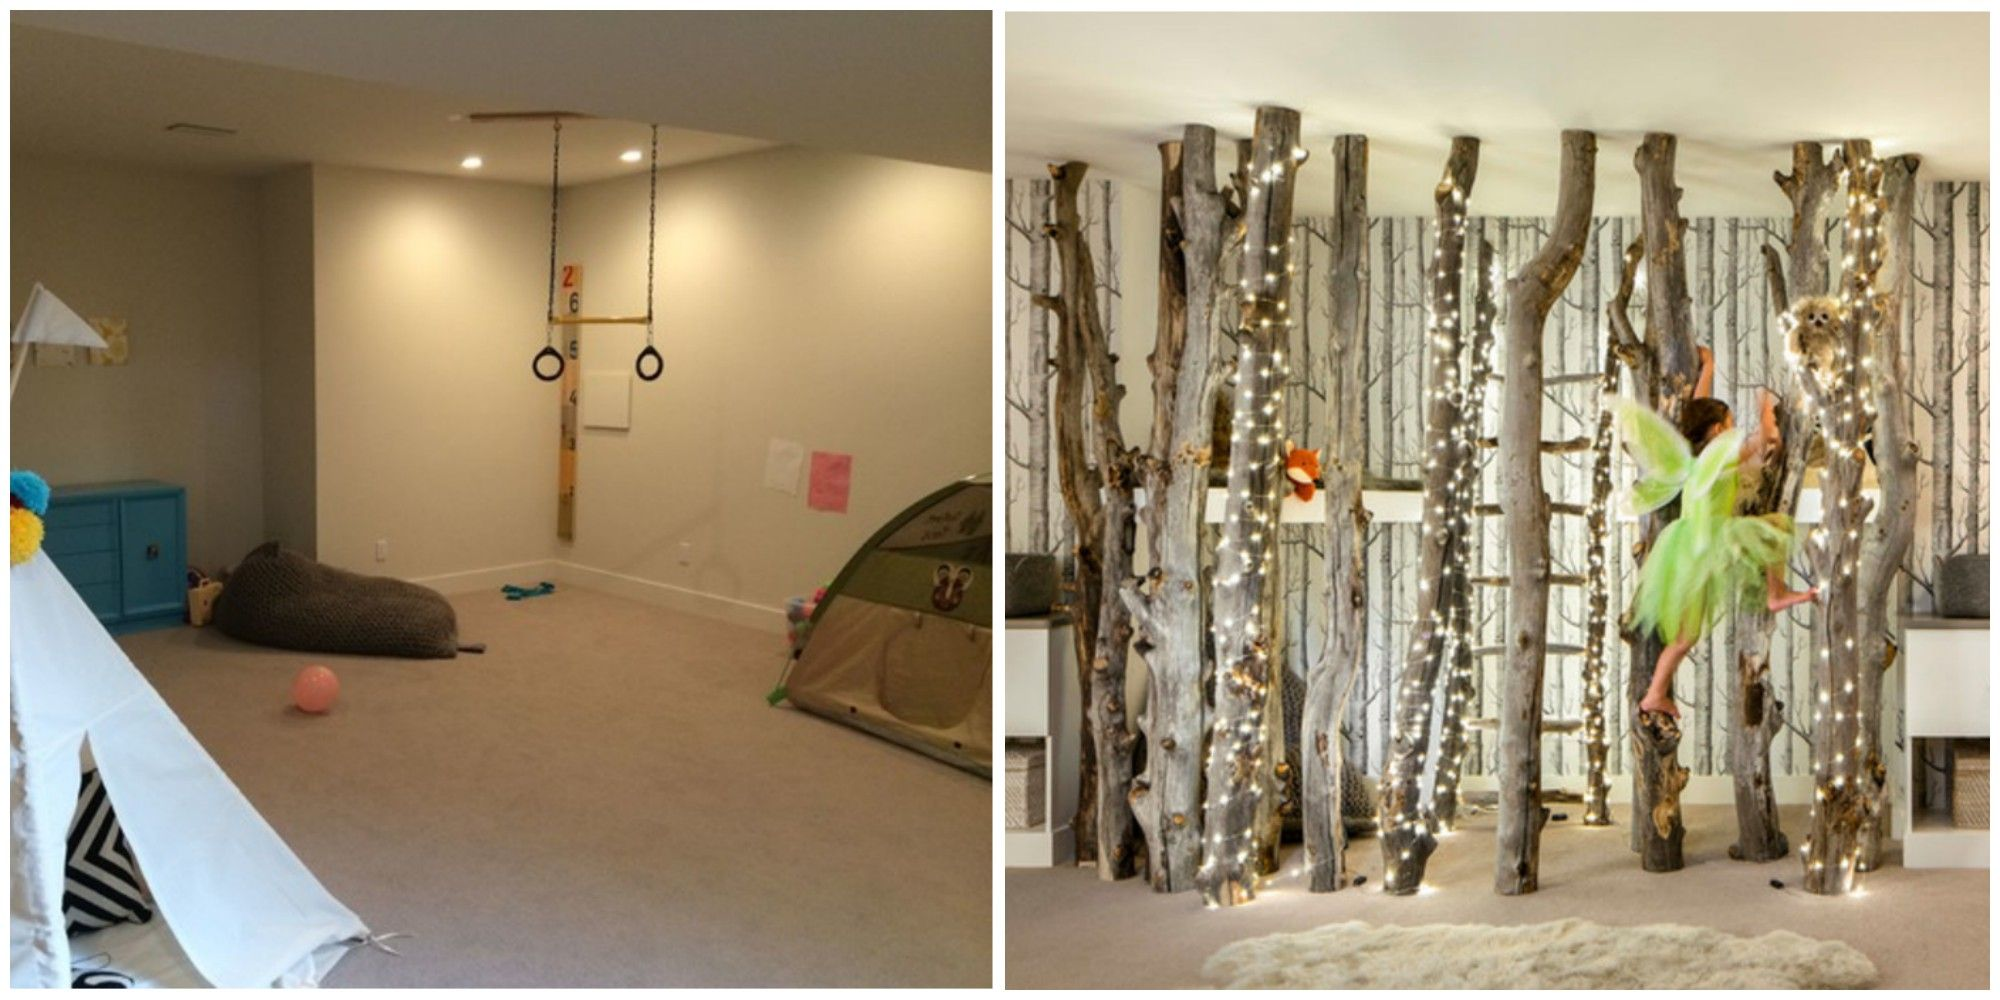 This Beautiful Indoor Forest Playroom Transformation Will Knock